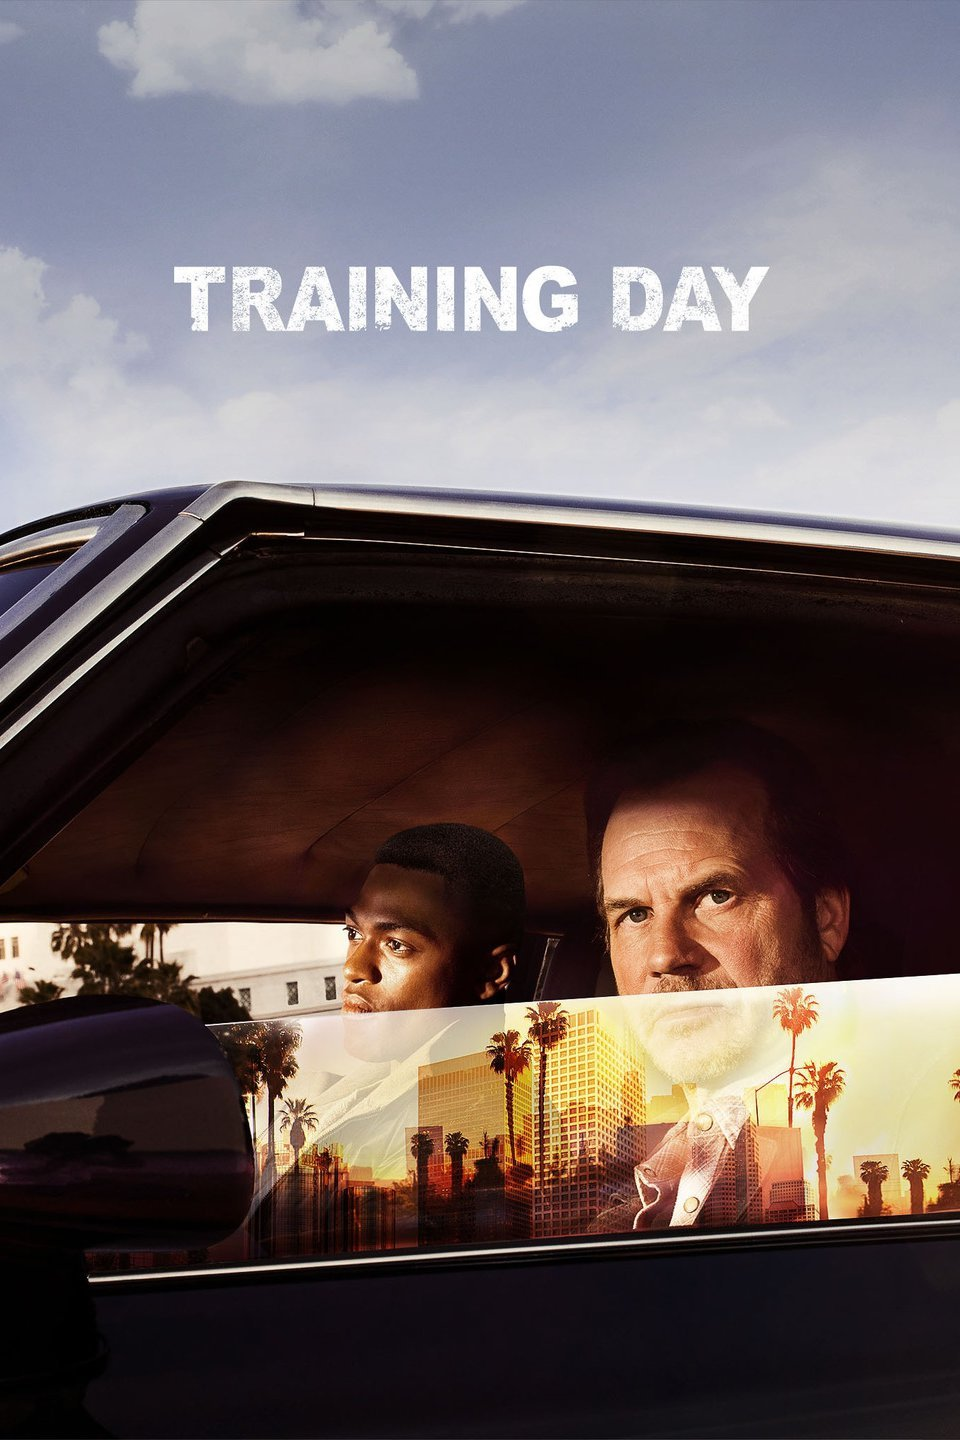 Training Day Season 1 Episode 9 Download 480p WEB-DL 150MB